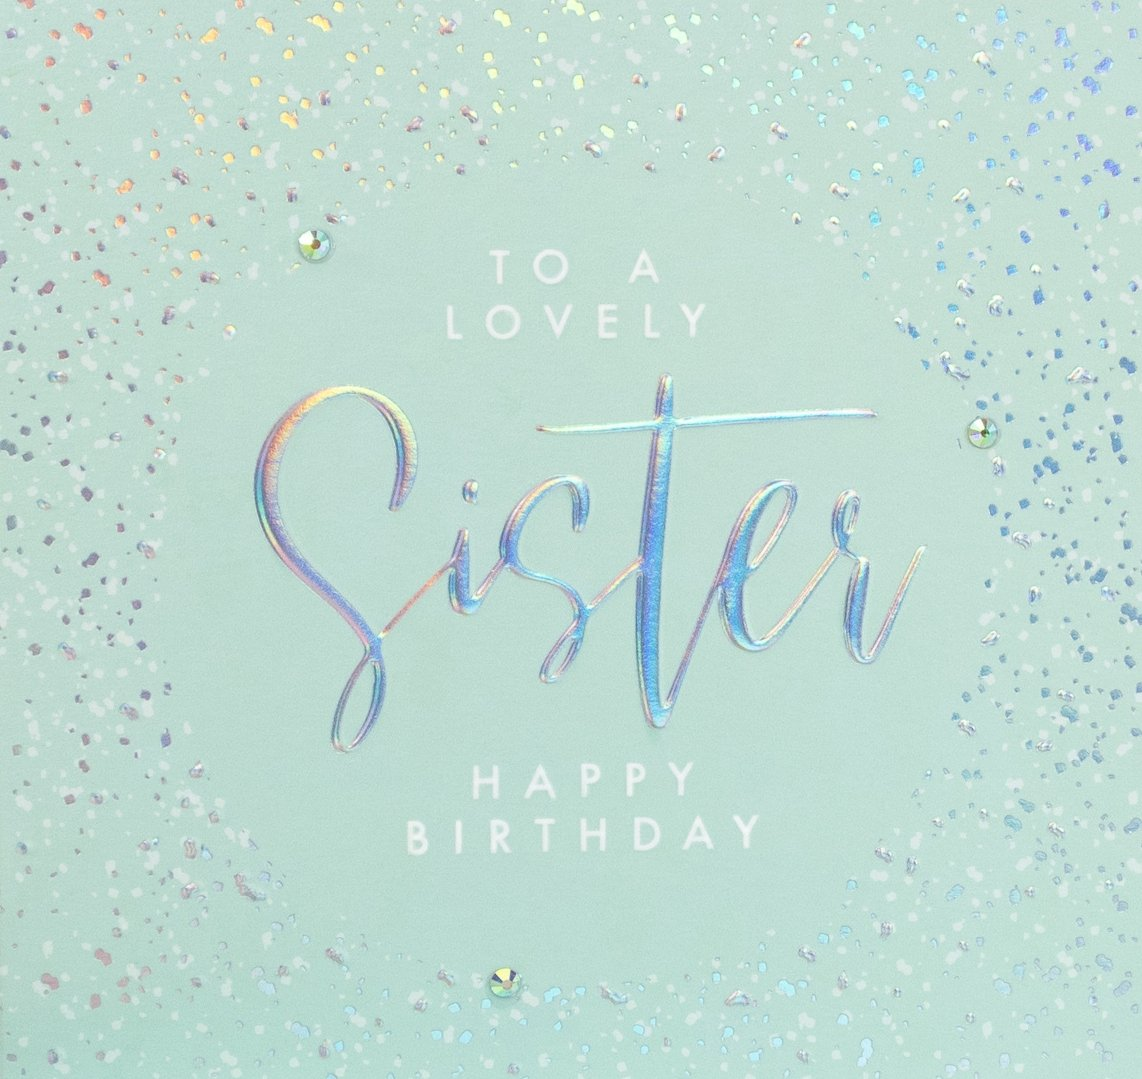 Aurora - Lovely Sister Birthday Card |More Than Just A Gift